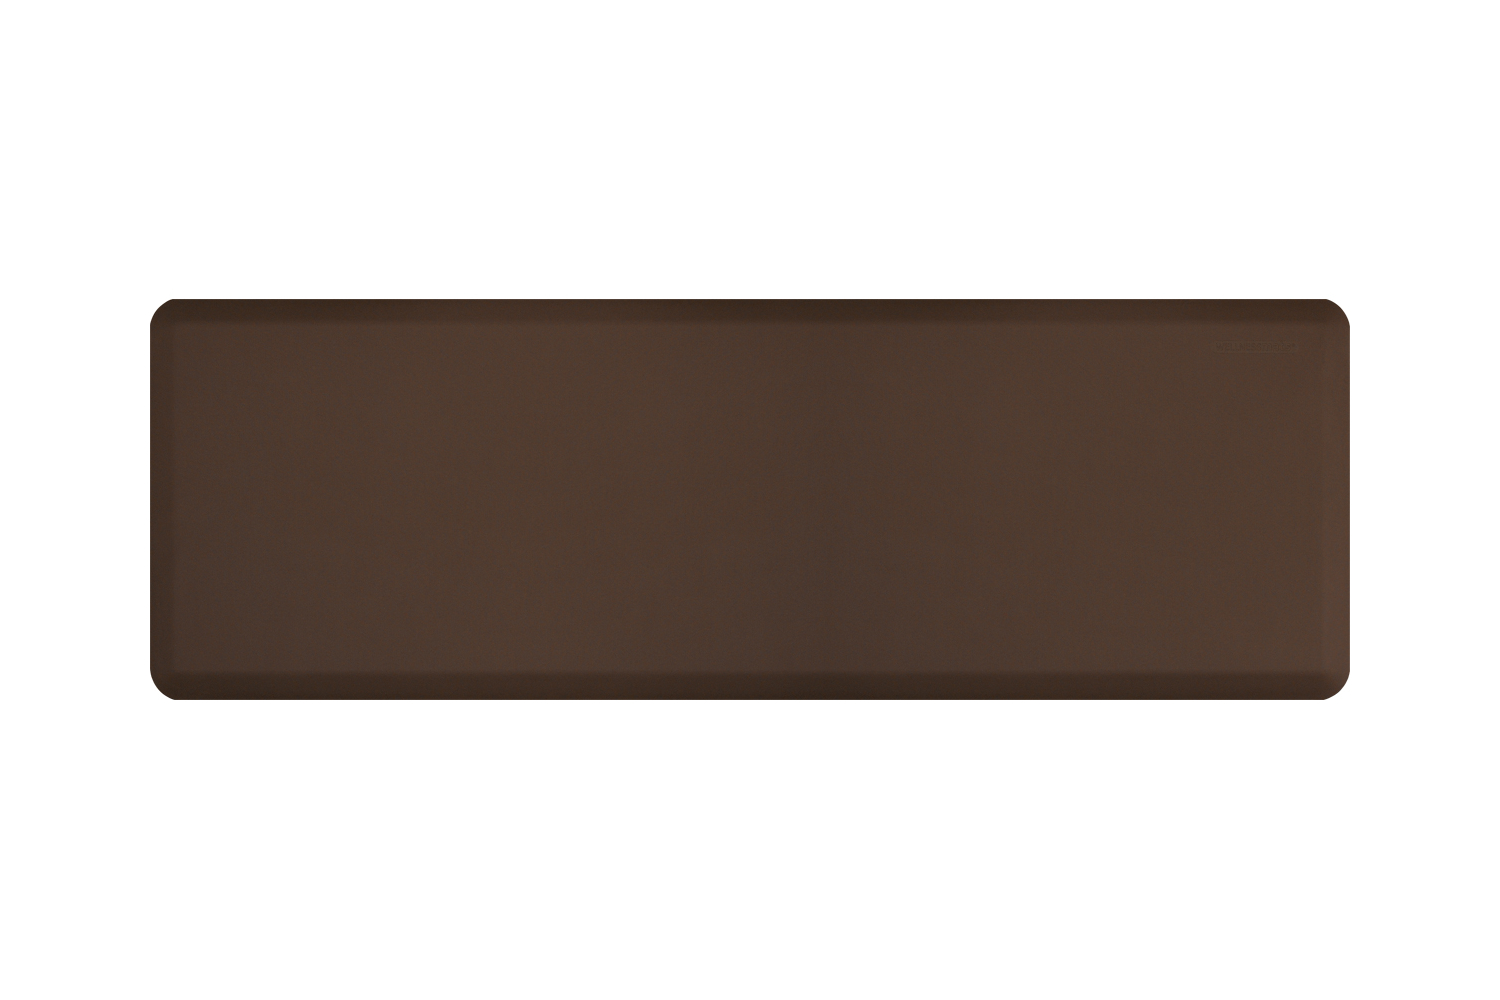 Wellness Anti-Fatigue Kitchen Mat - 6 x 2 ft. - Brown